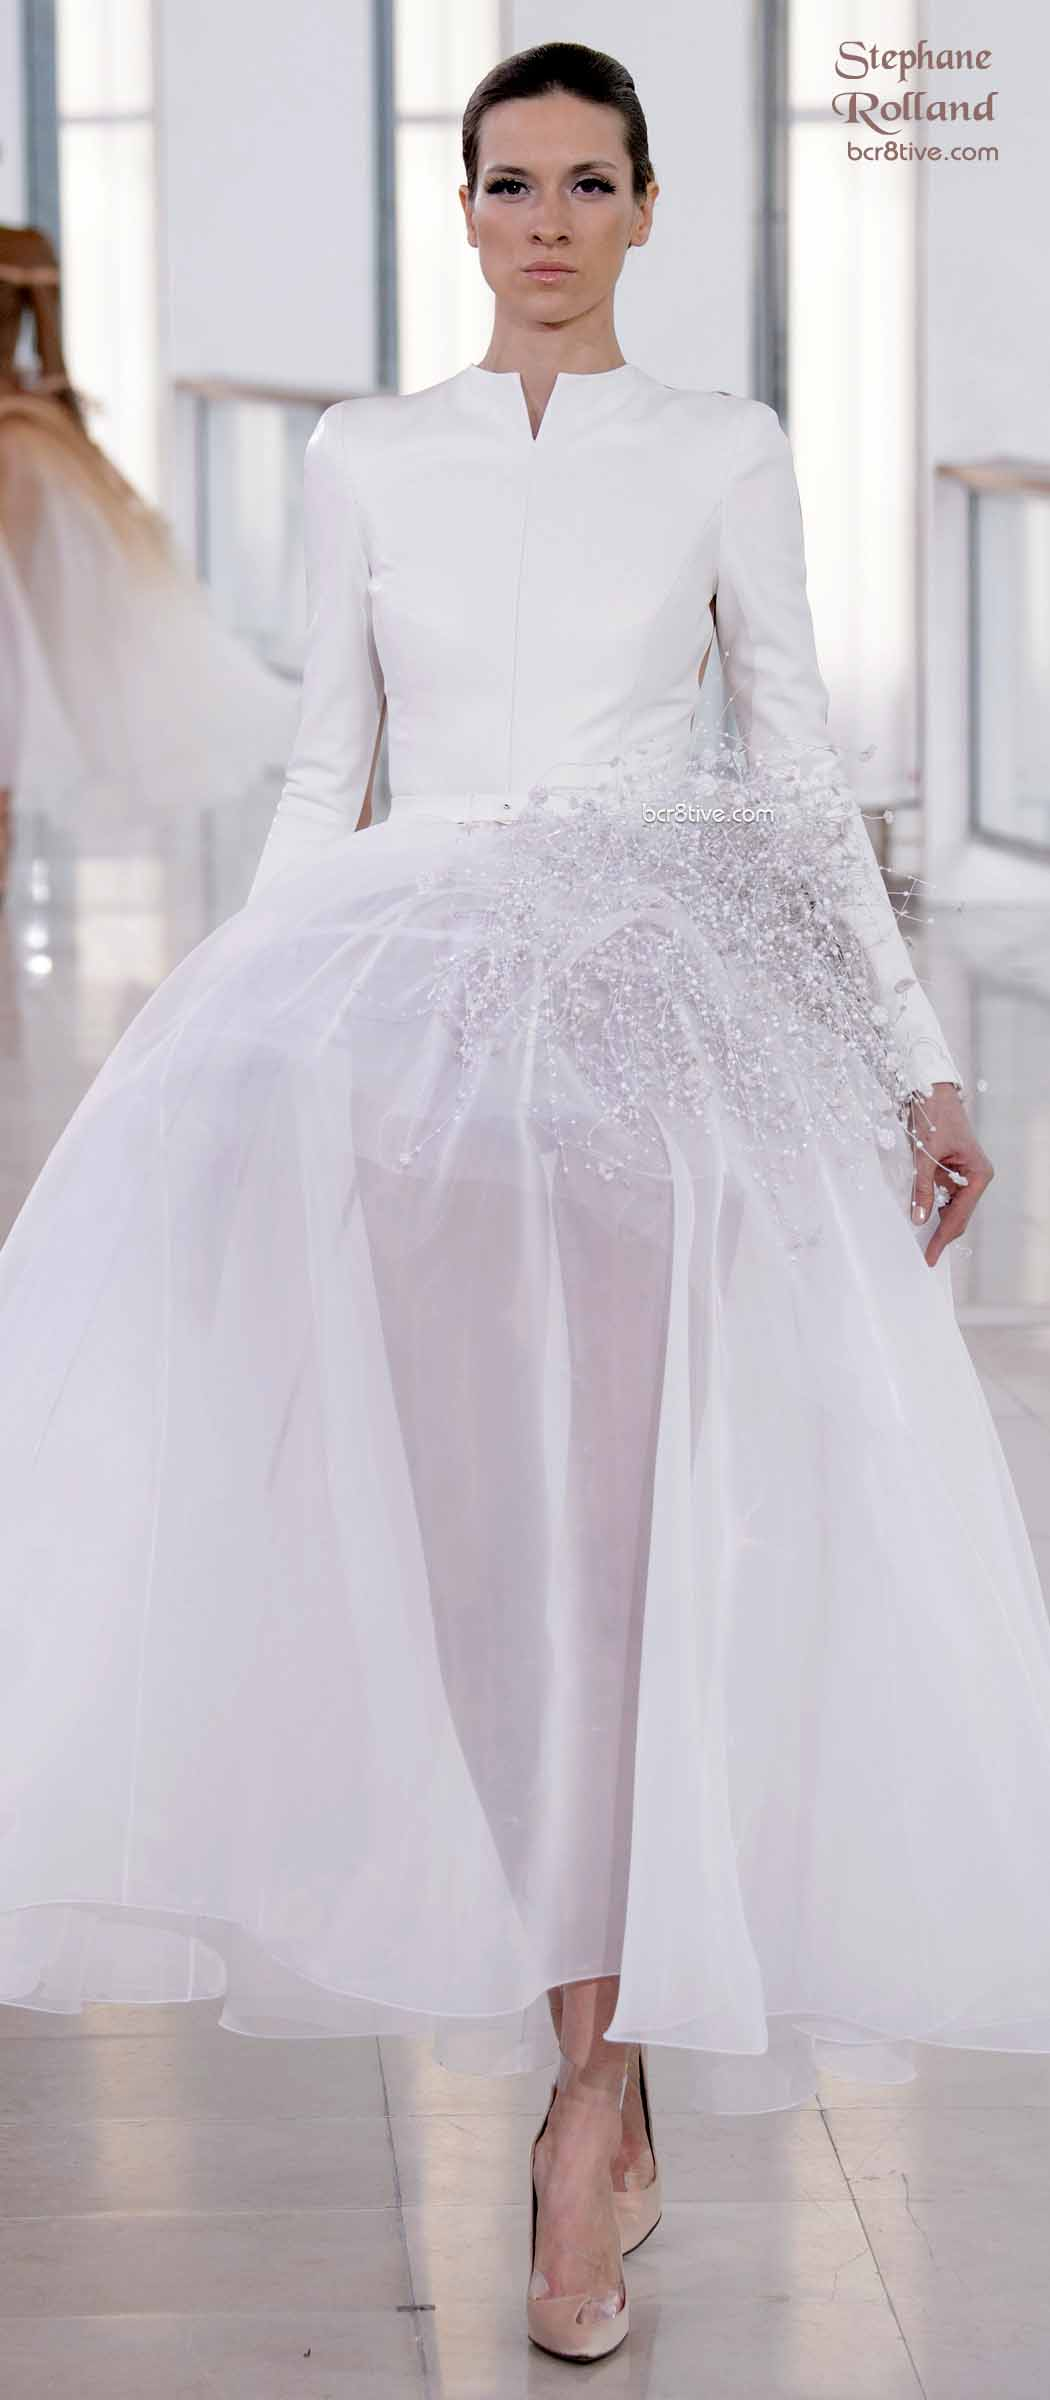 Stéphane Rolland Couture Spring 2015